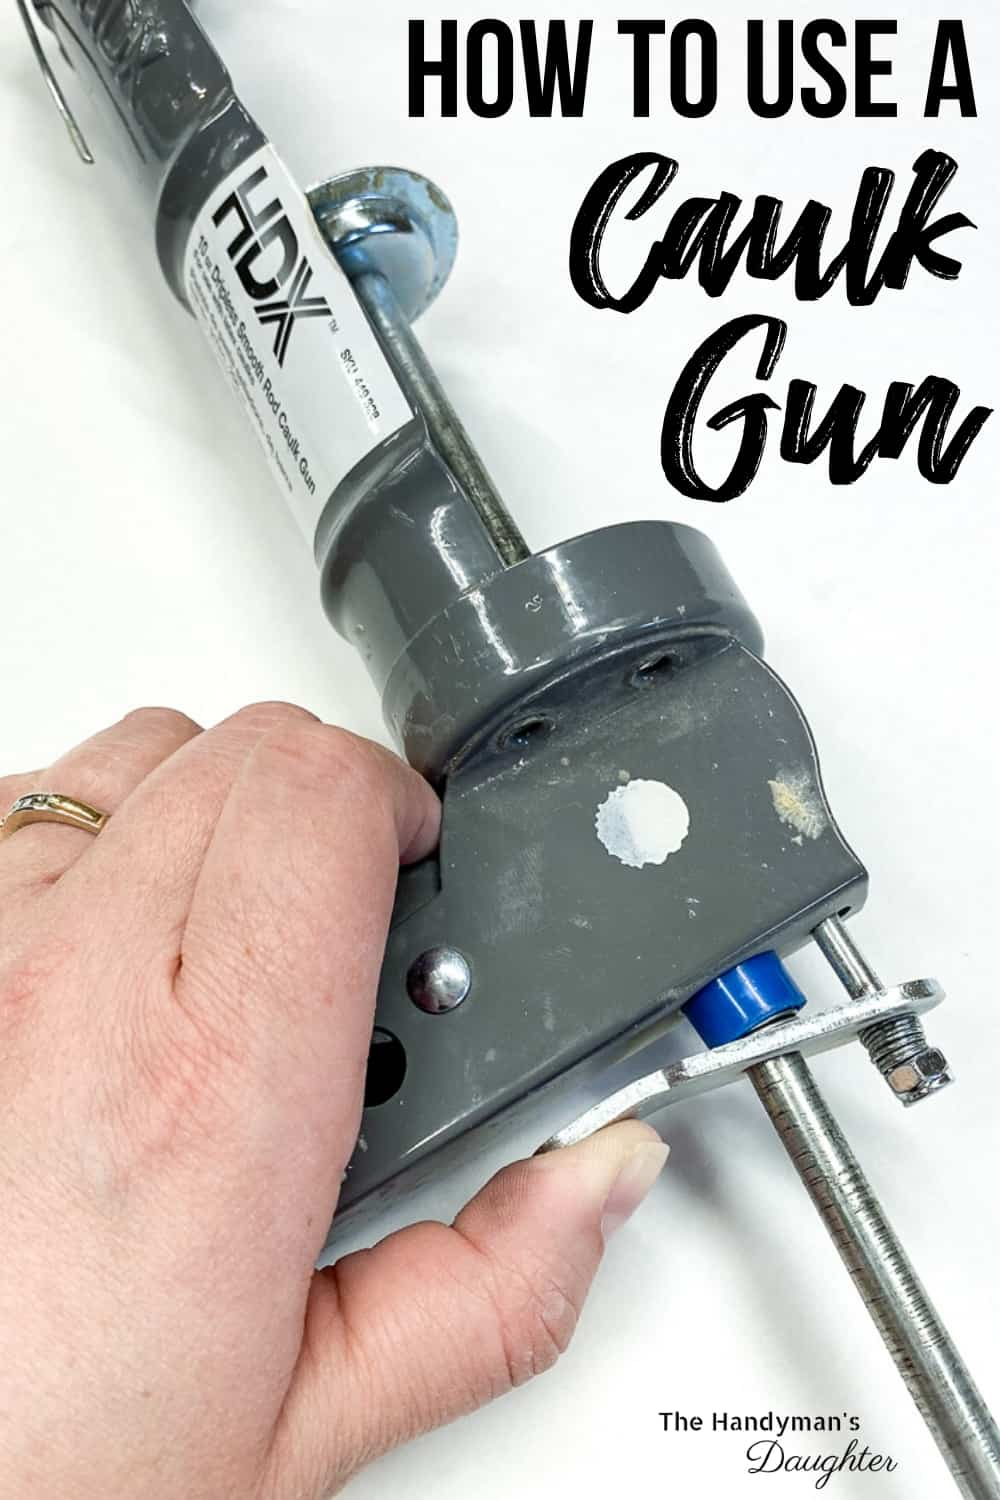 how to use a caulk gun with hand pressing the trigger